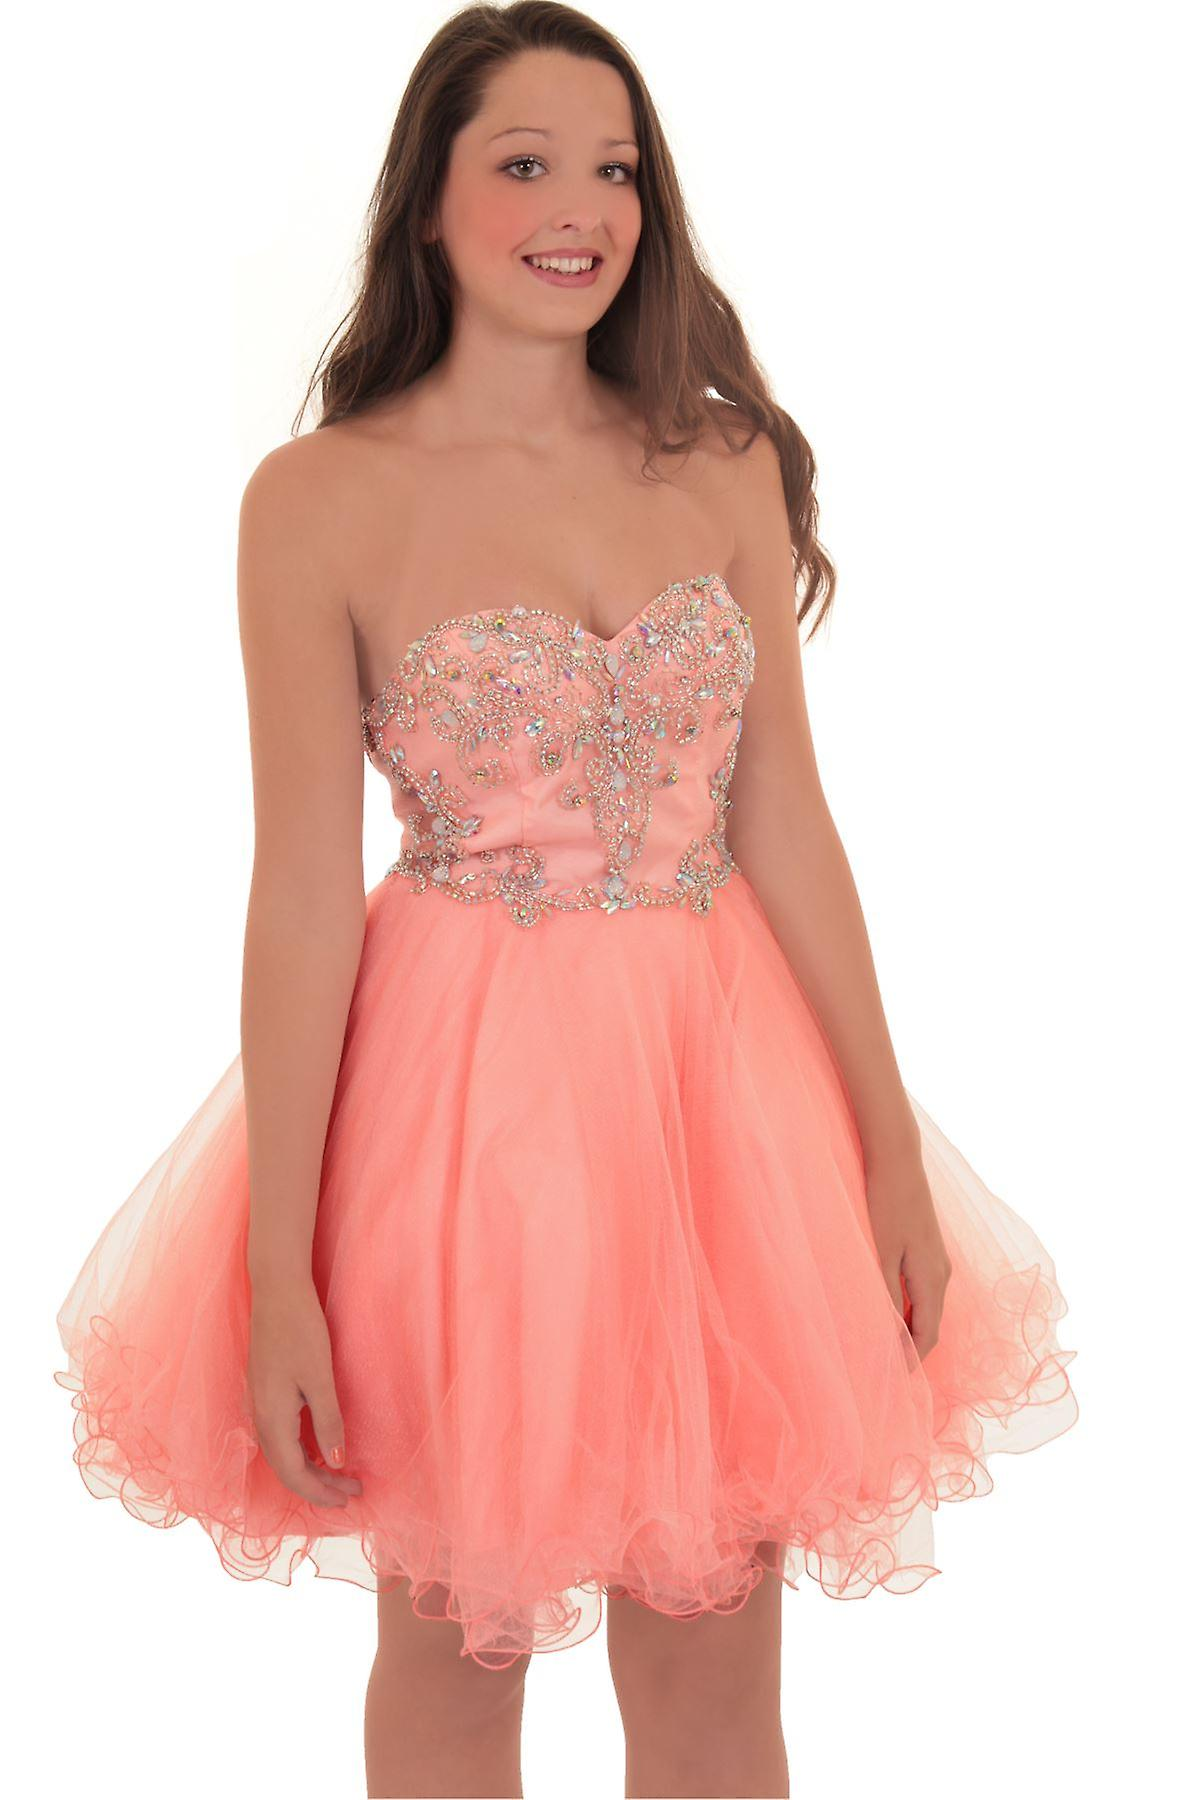 Short Mini Boobtube Chiffon Puff Tutu Prom Bridesmaid Mesh Cocktail Party Dress